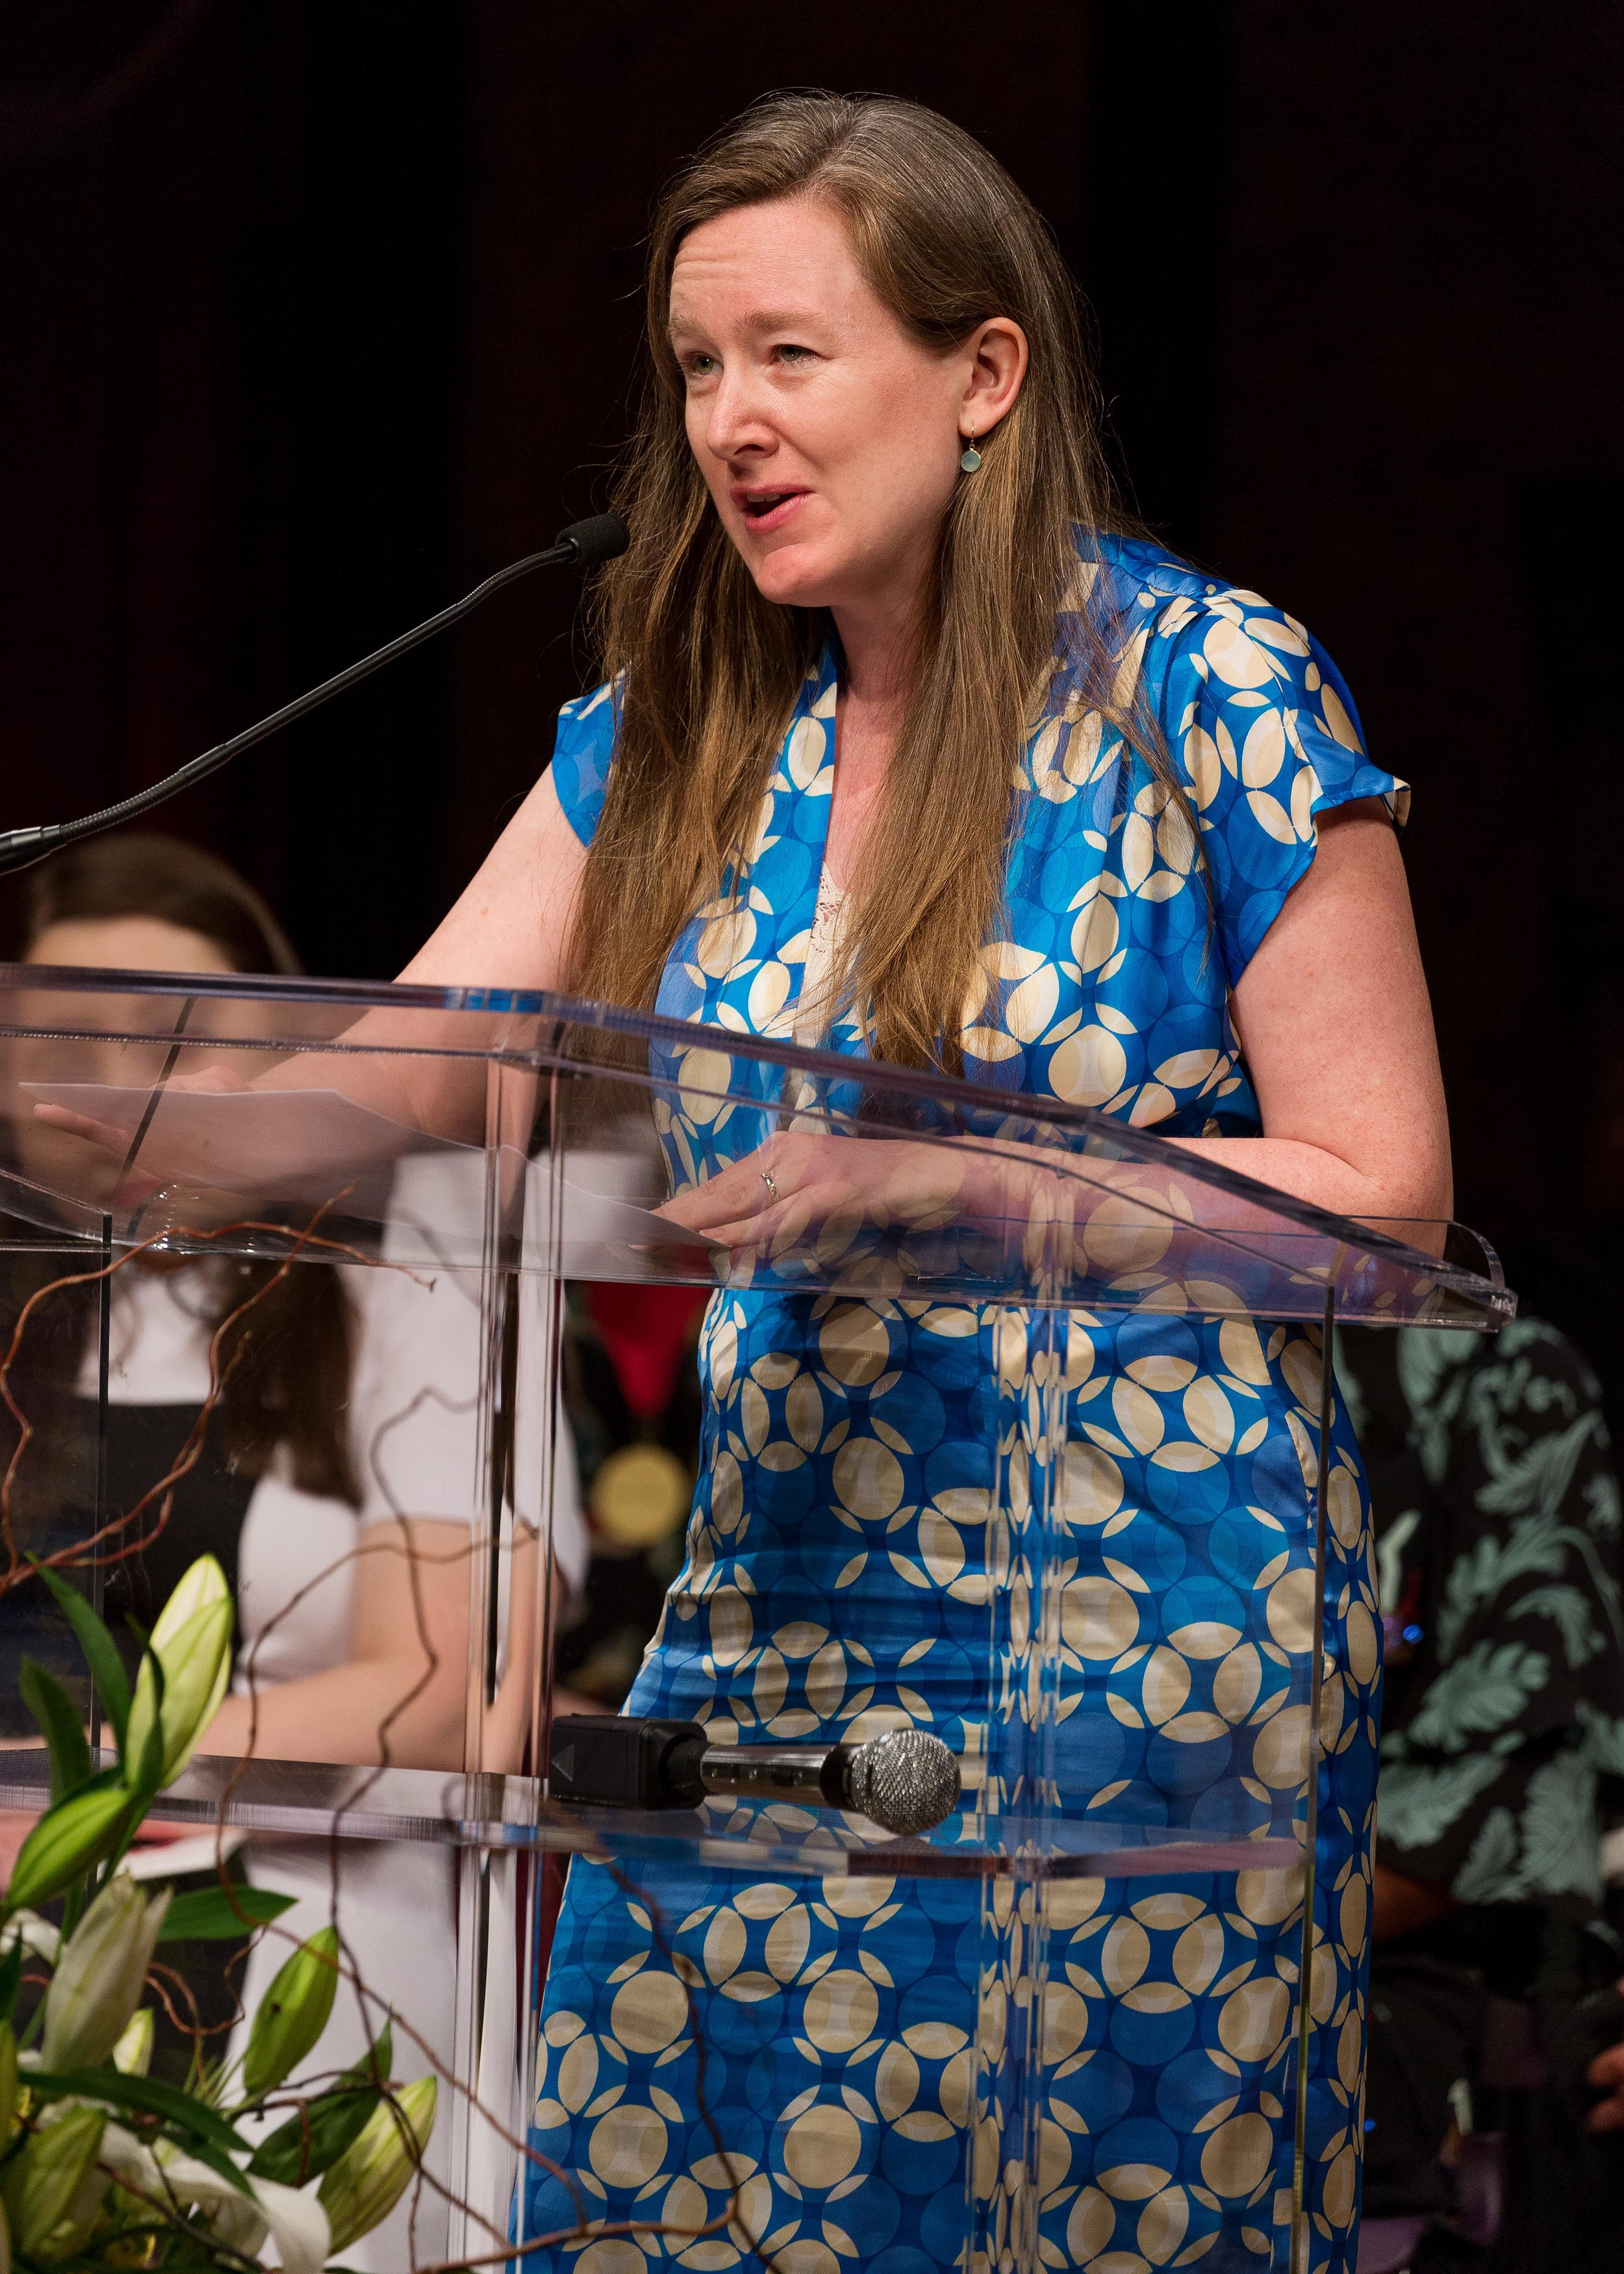 Lillys and Mothers - by Sarah RuhlOn May 22, 2017, Sarah Ruhl spoke about women in theater and theater criticism. The complete text from her speech is published here with Sarah's permission.